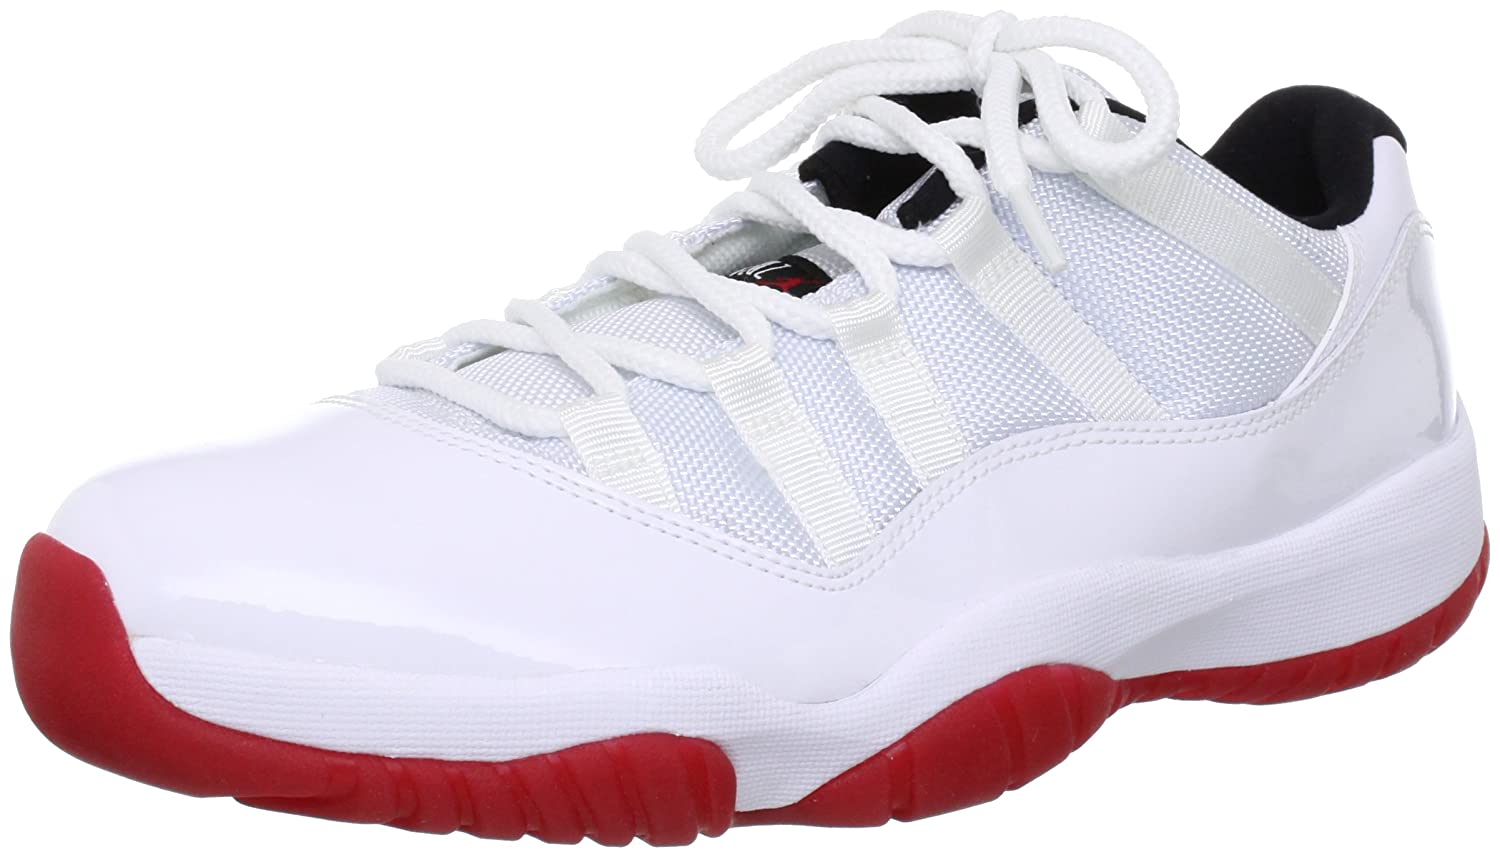 official photos b0833 28dba Amazon.com   Nike Mens Air Jordan 11 Retro Low Cherry Synthetic Basketball  Shoes   Basketball